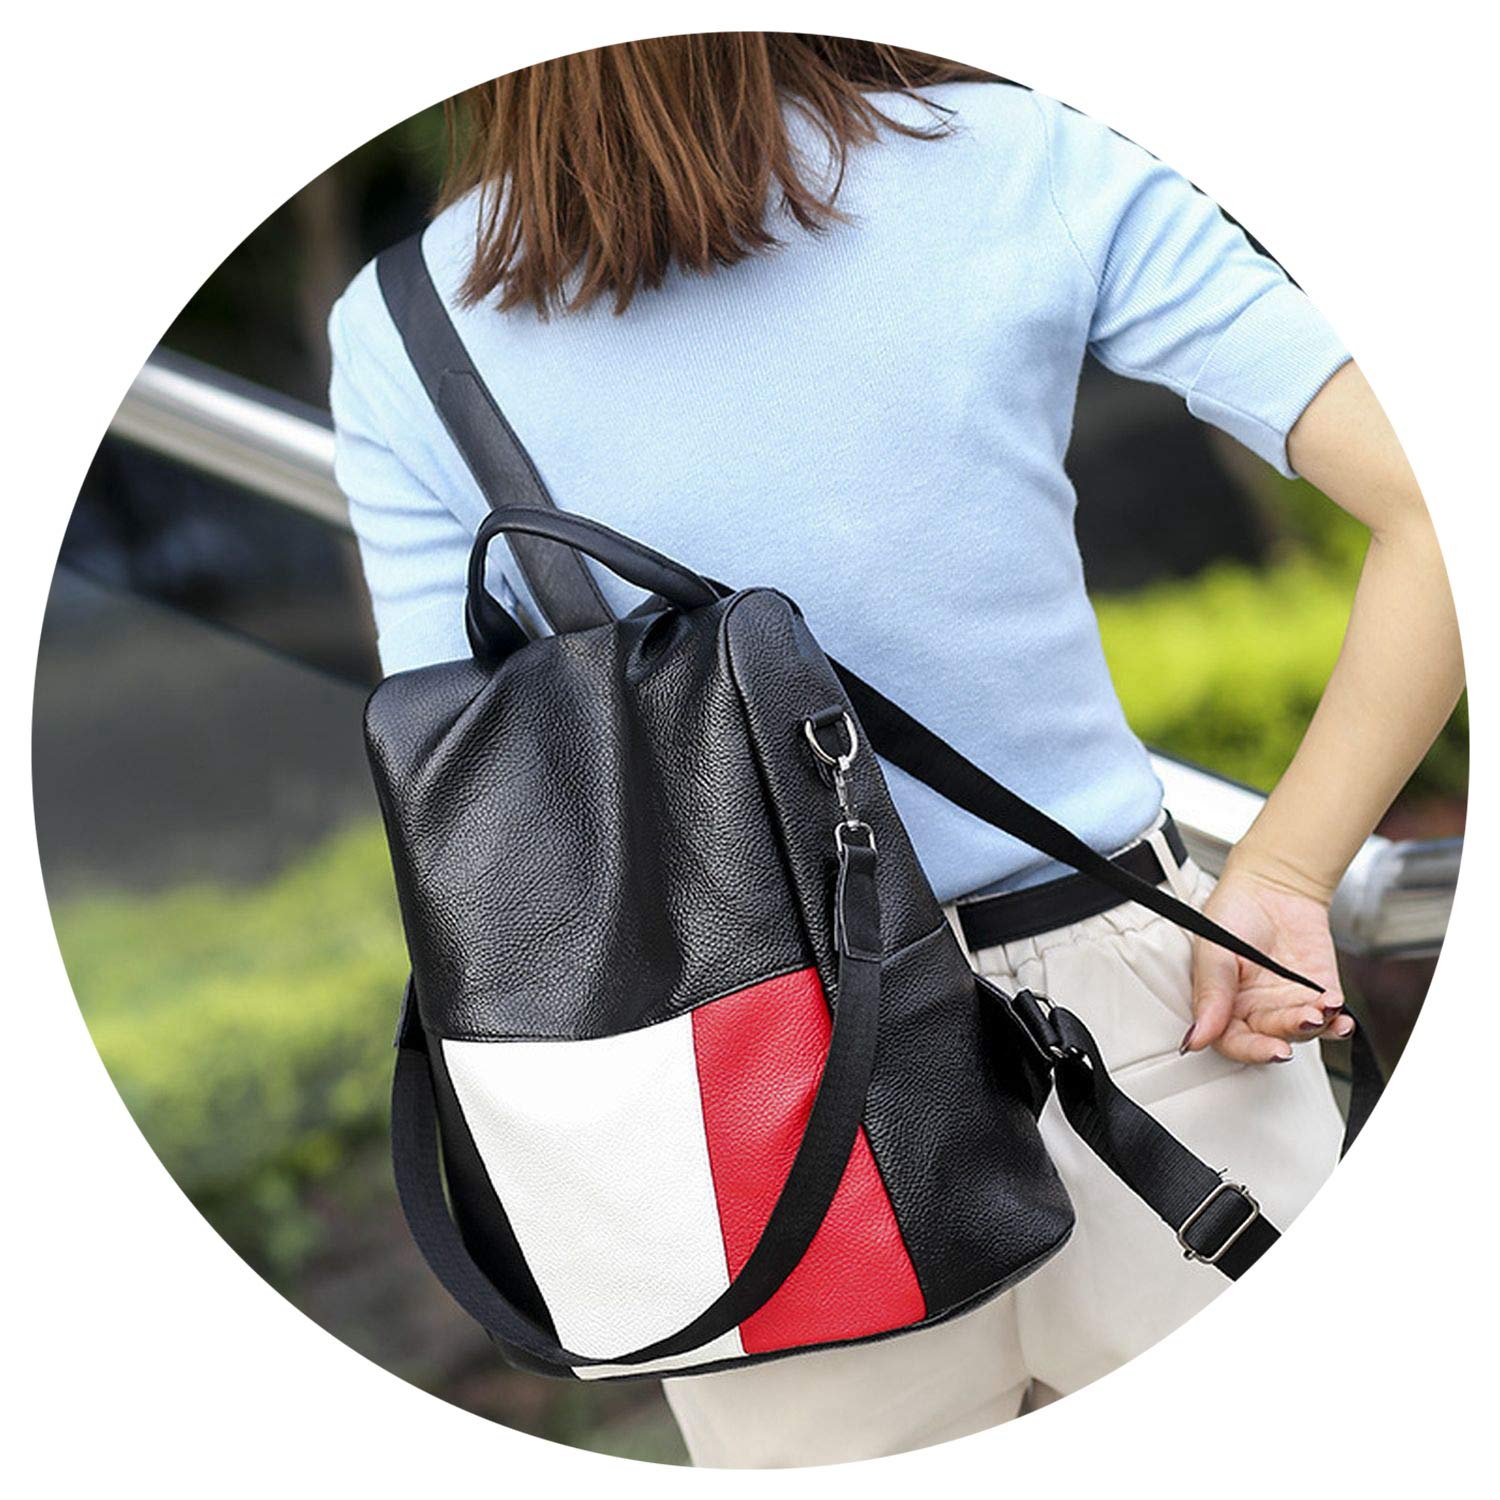 Backpack Women 2019 new on wild hit cr soft leather backpack anti-theft Multifunction pu daily bag